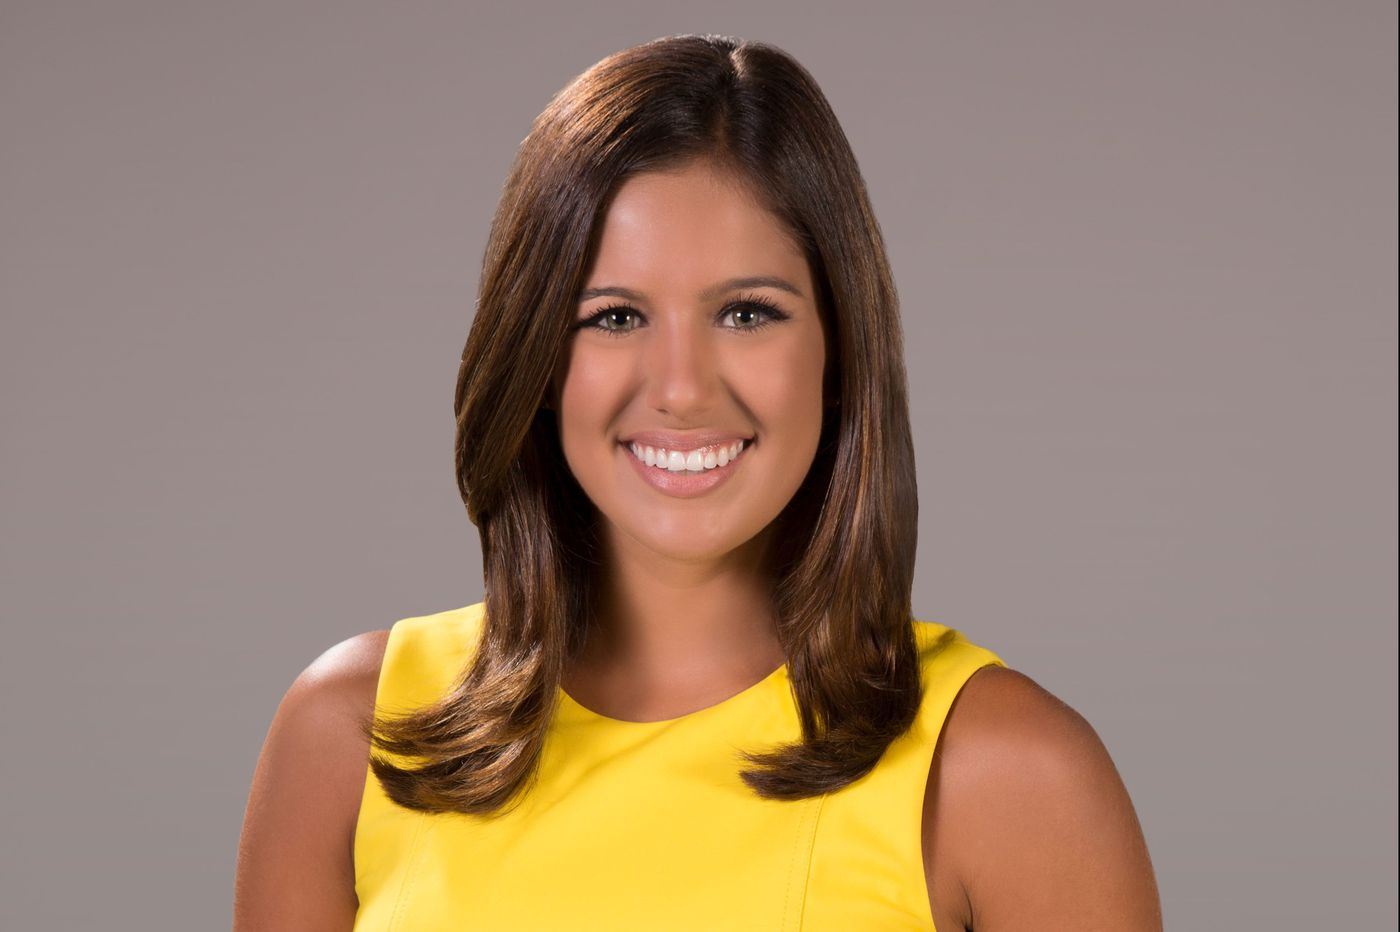 New Jersey's Chandler Lutz replaces Meisha Johnson at CBS3